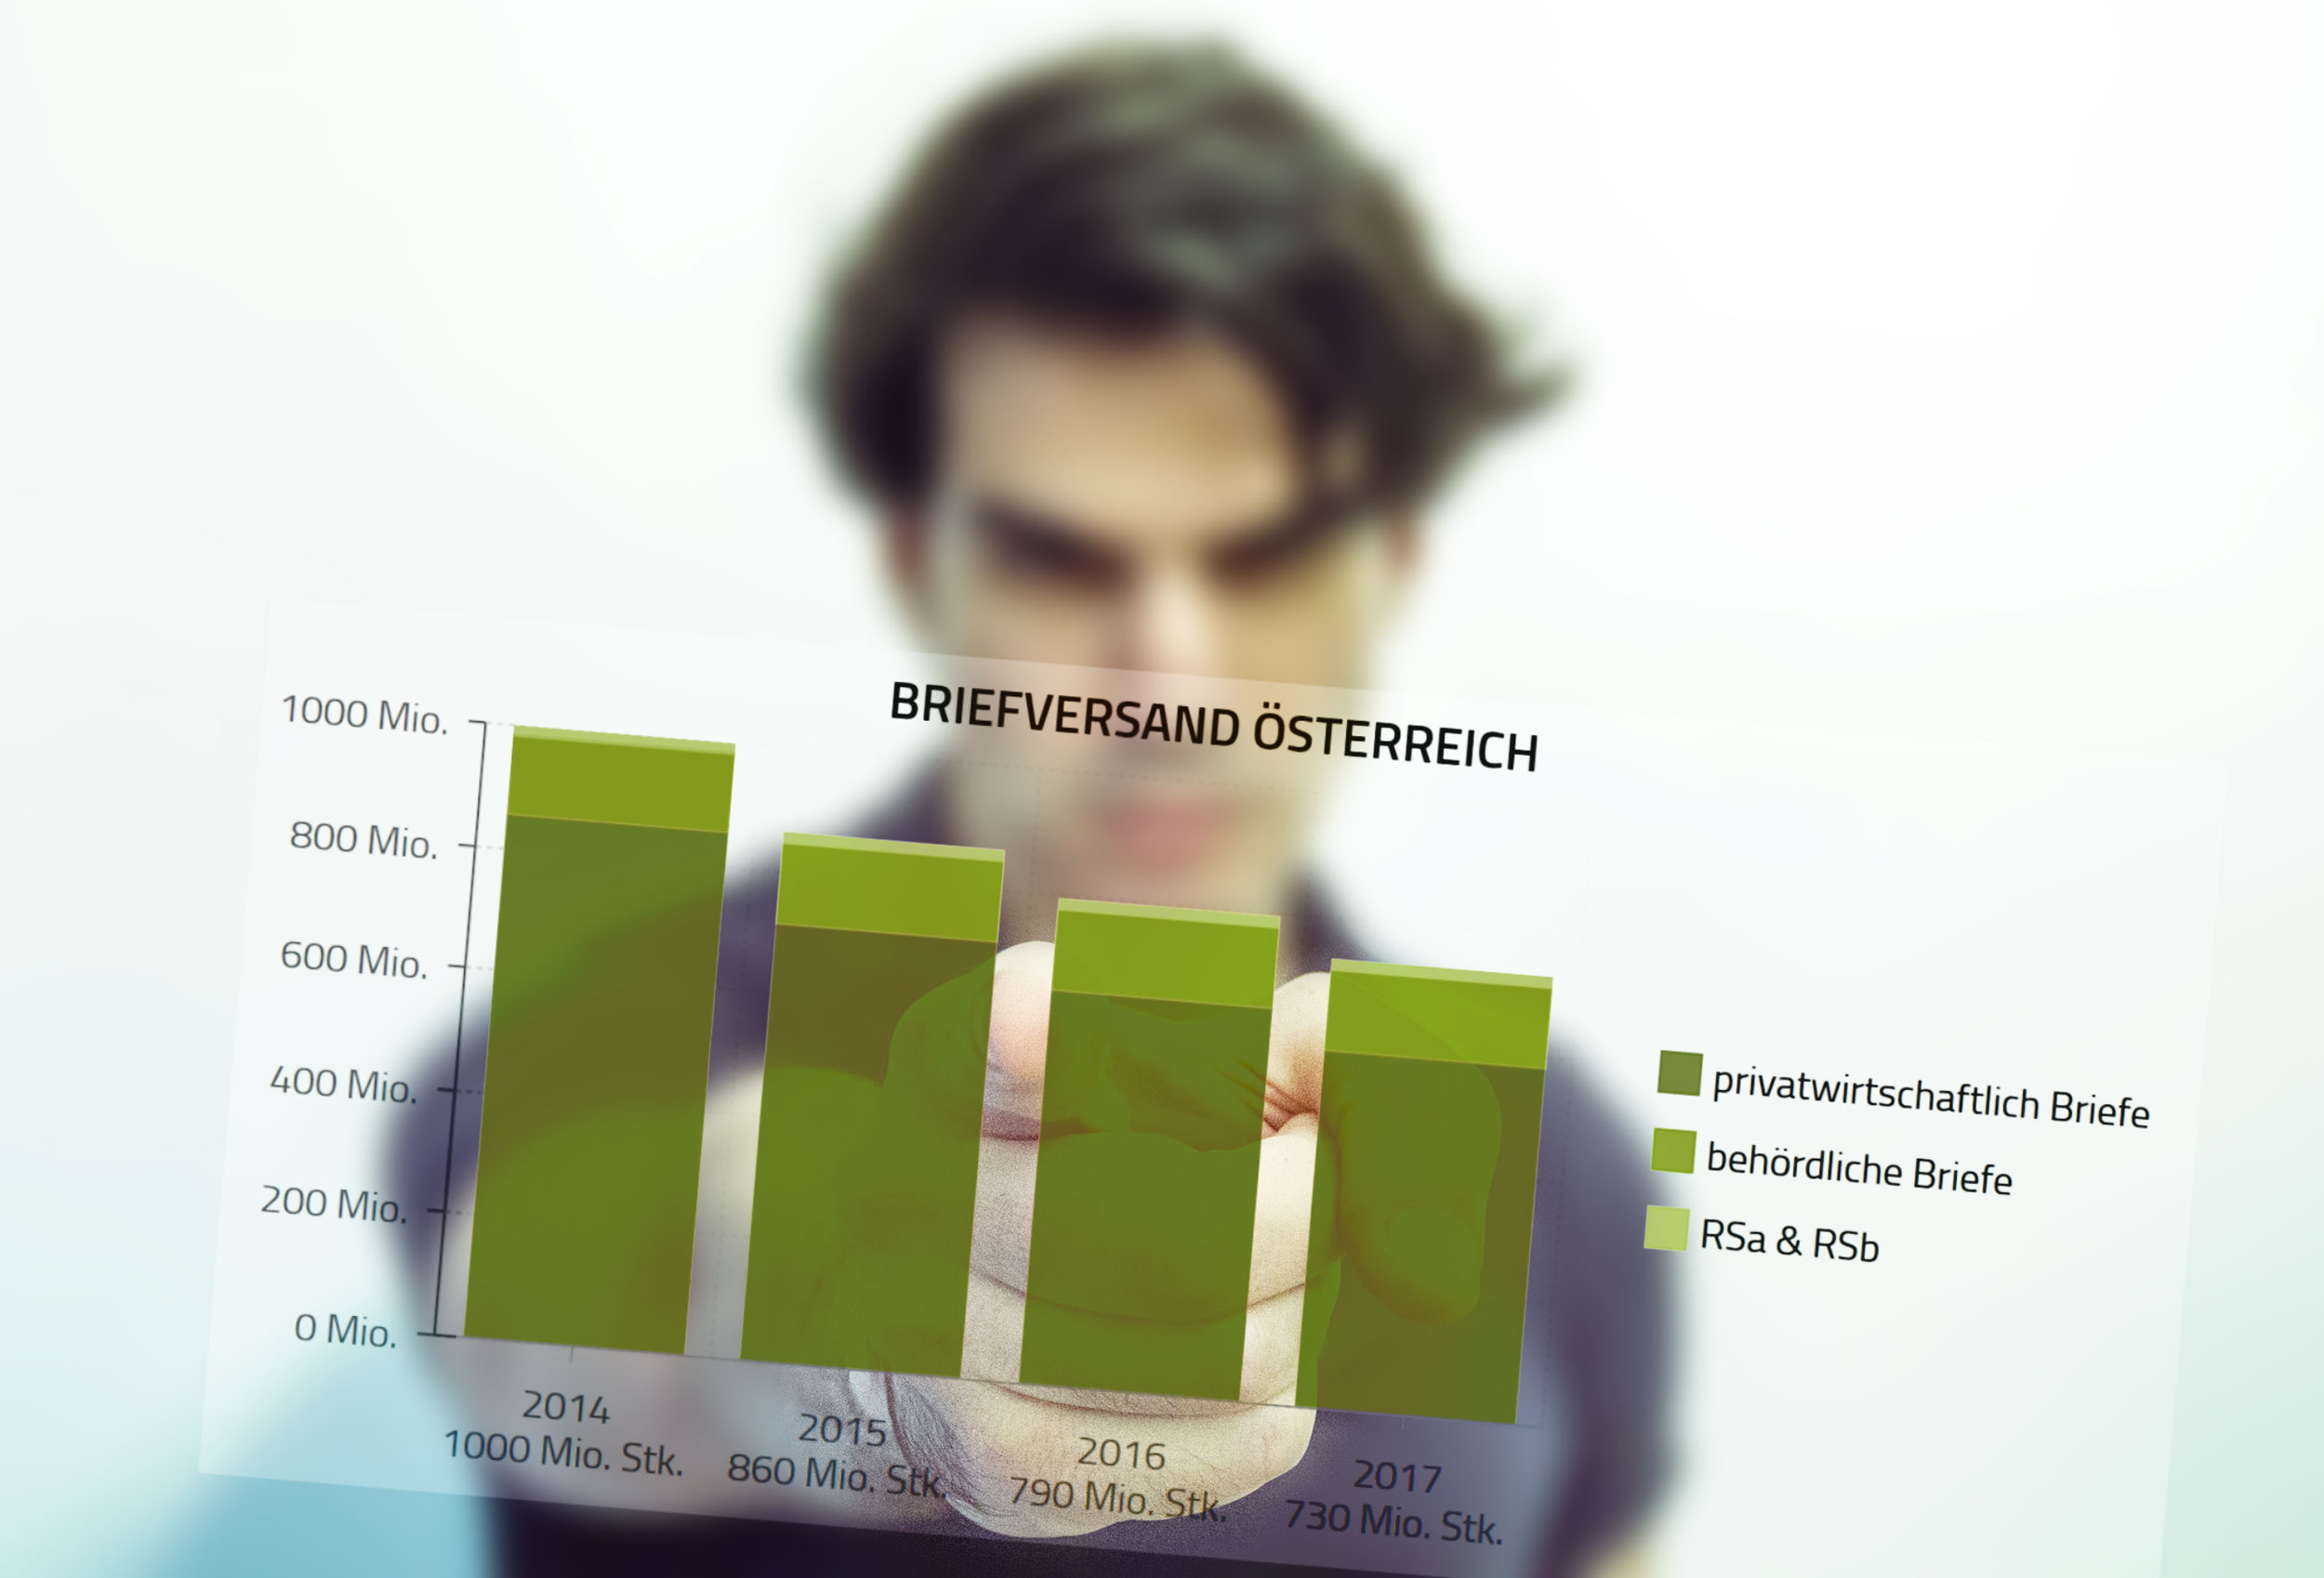 Briefstatistik